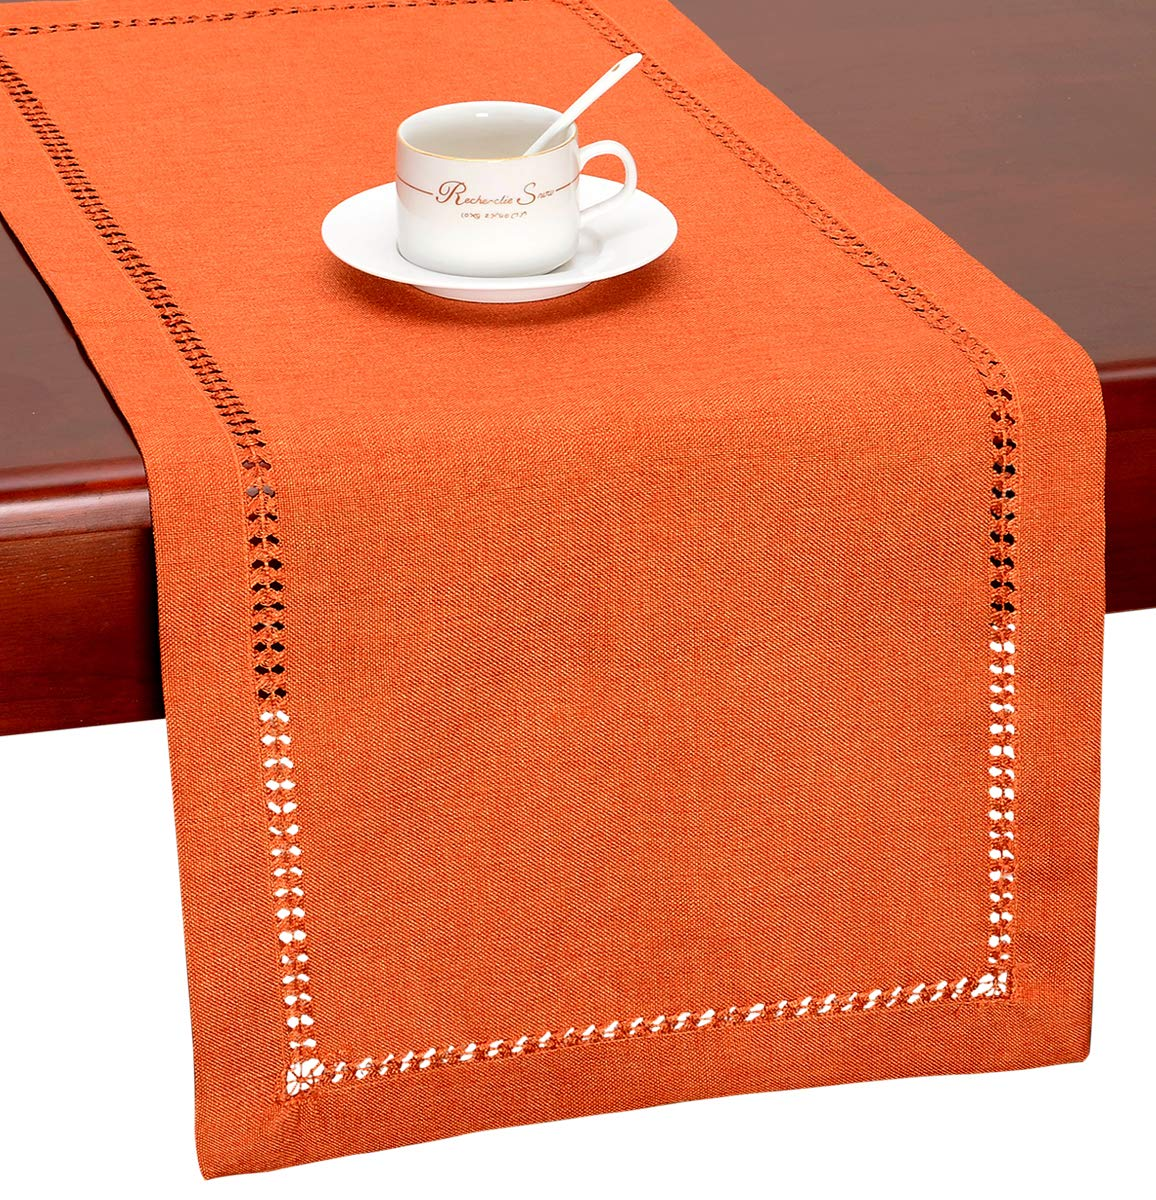 Fall Autumn Decorations 14 x 54 Inch Grelucgo Thanksgiving Holidays Orange Table Runner Or Dresser Scarf